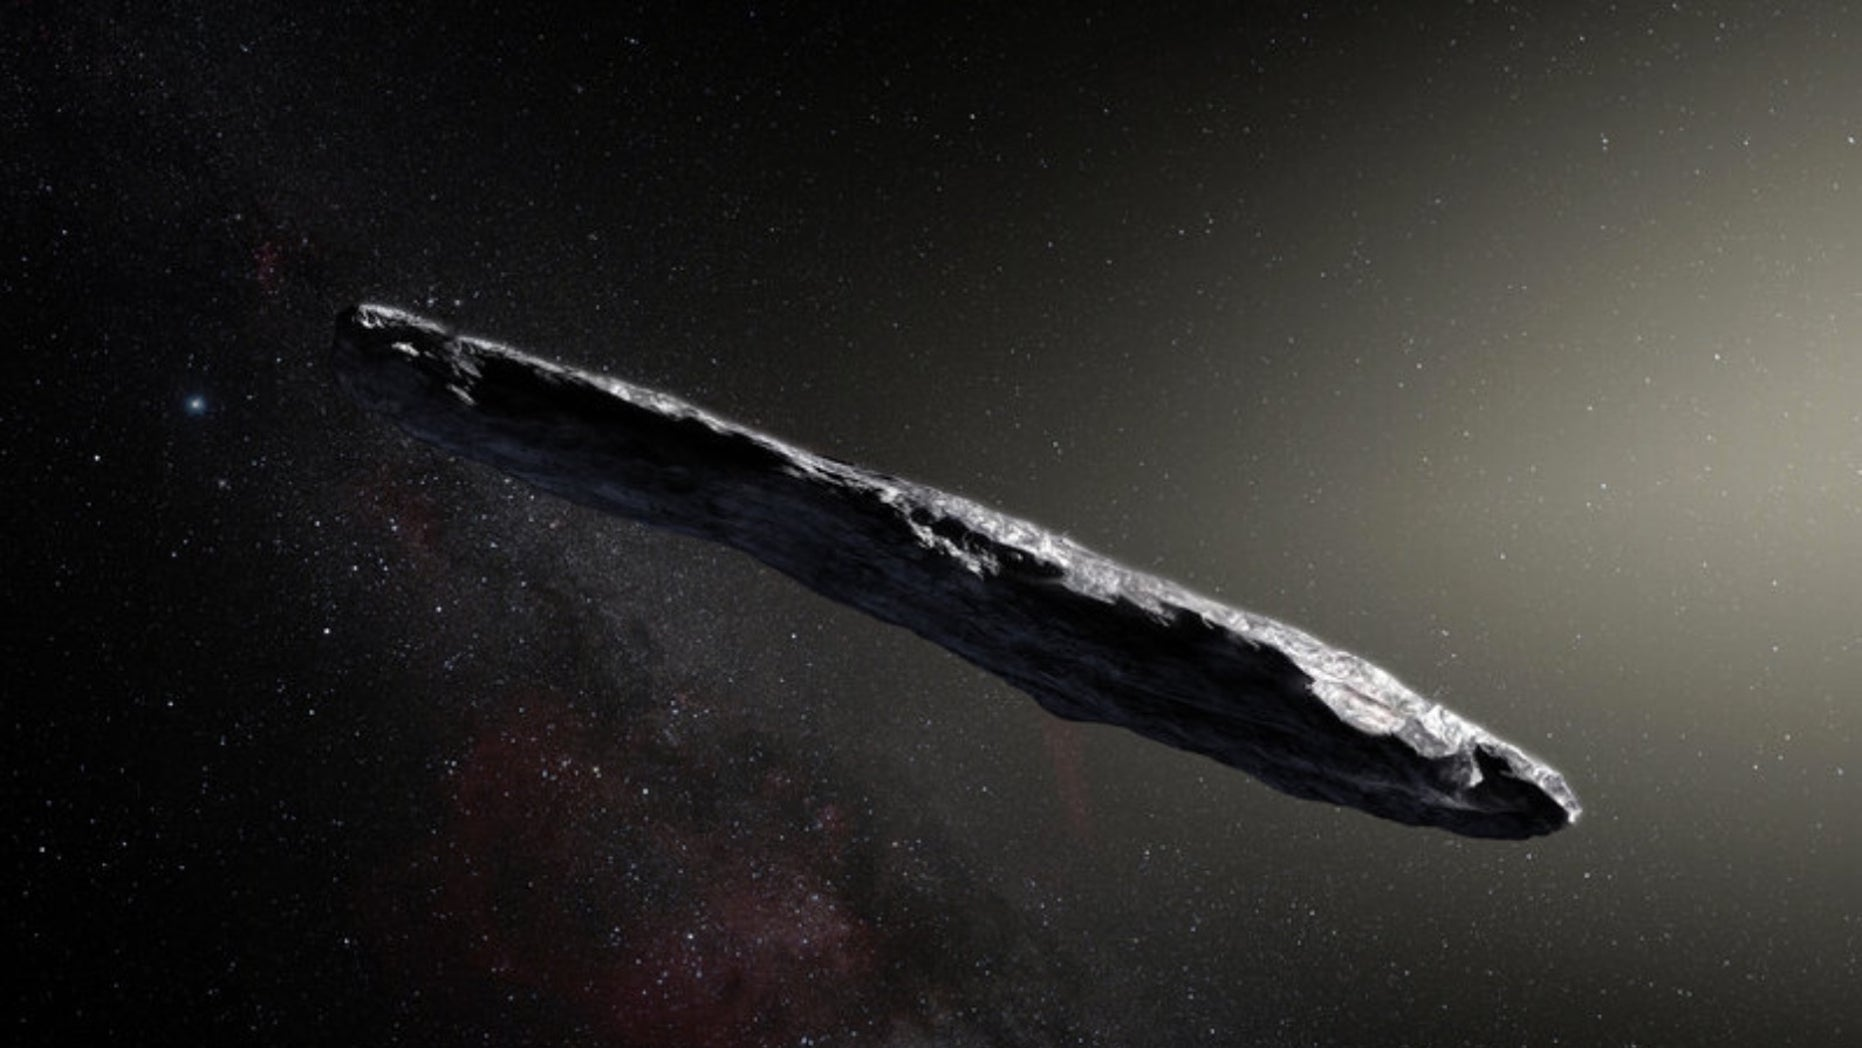 An artist's depiction of Oumuamua, the first detected interstellar object.